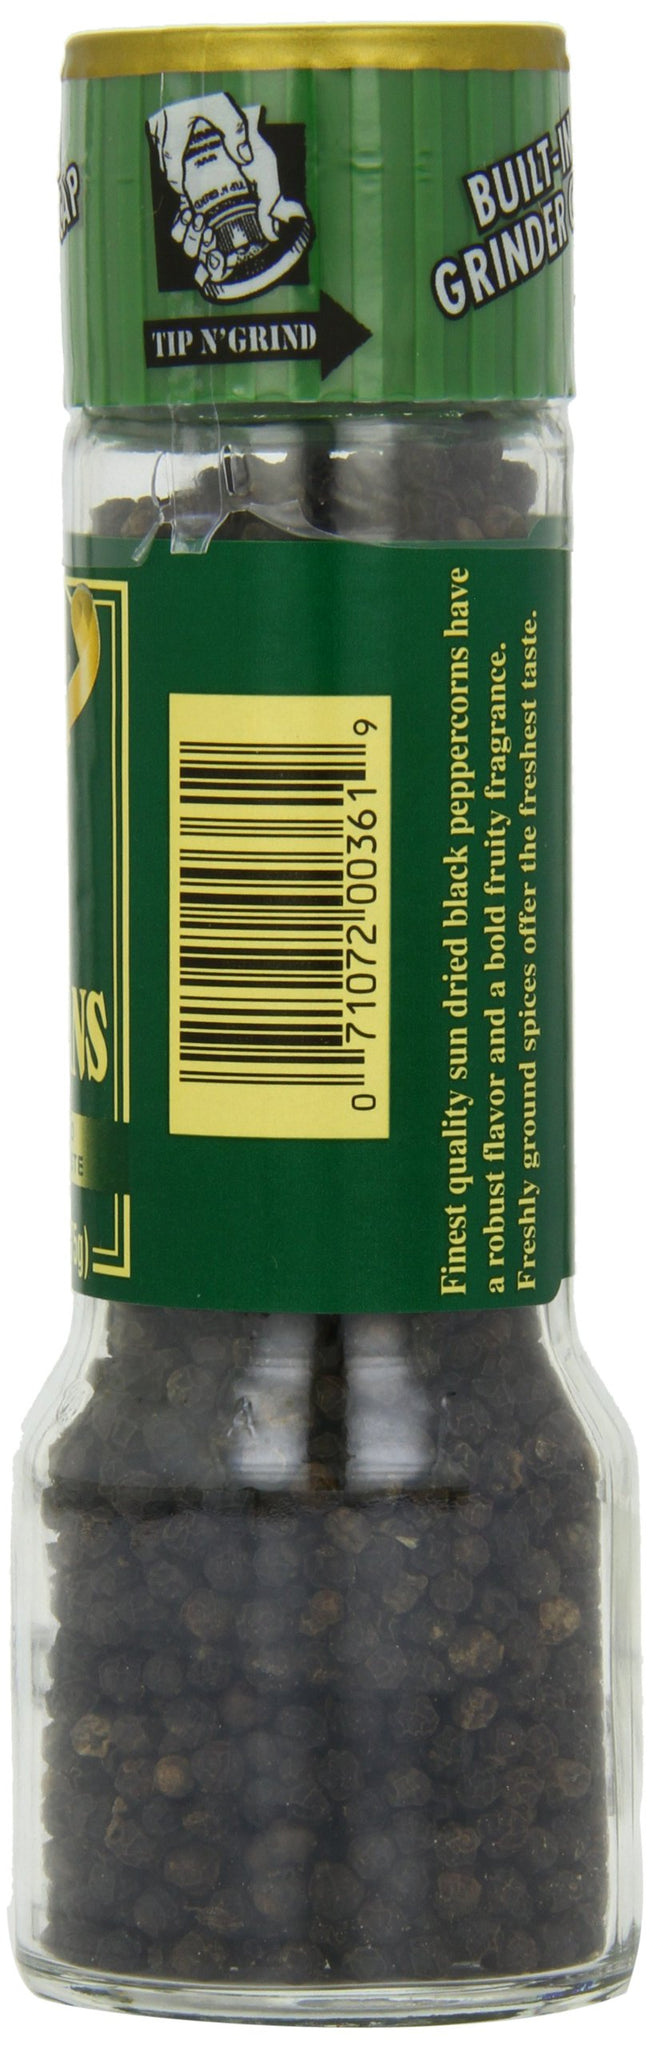 Alessi Black Peppercorn Grinder, 2.64 oz (Pack of 6), [wellica]